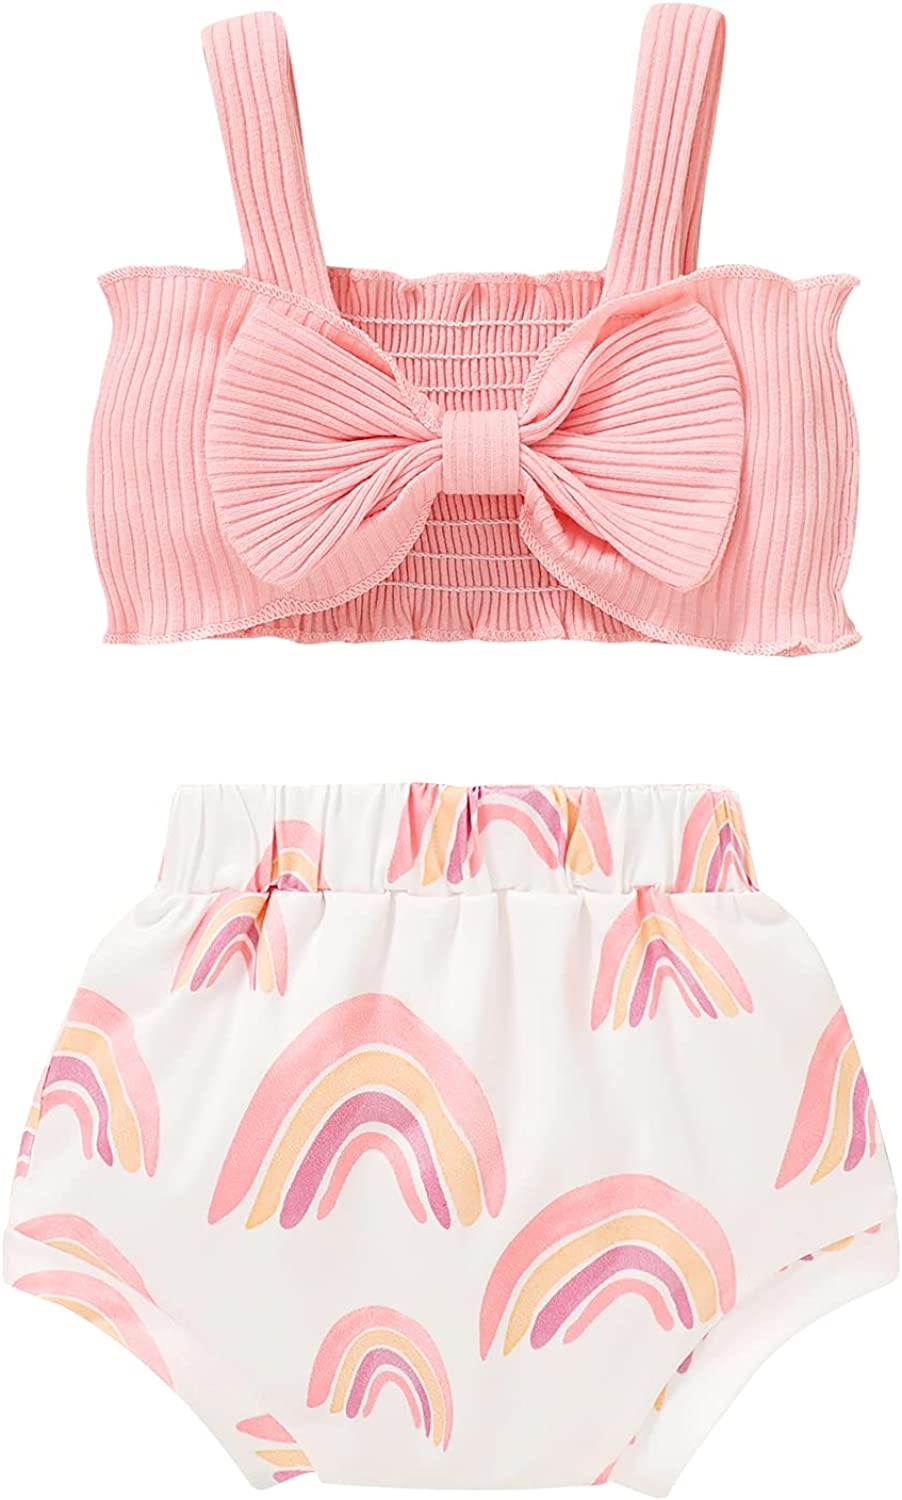 Newborn Baby Girls Clothes Sleeveless Crop Top Halter Bowknot Top and Rainbow Shorts Pants Cute Girl Summer Outfits Set